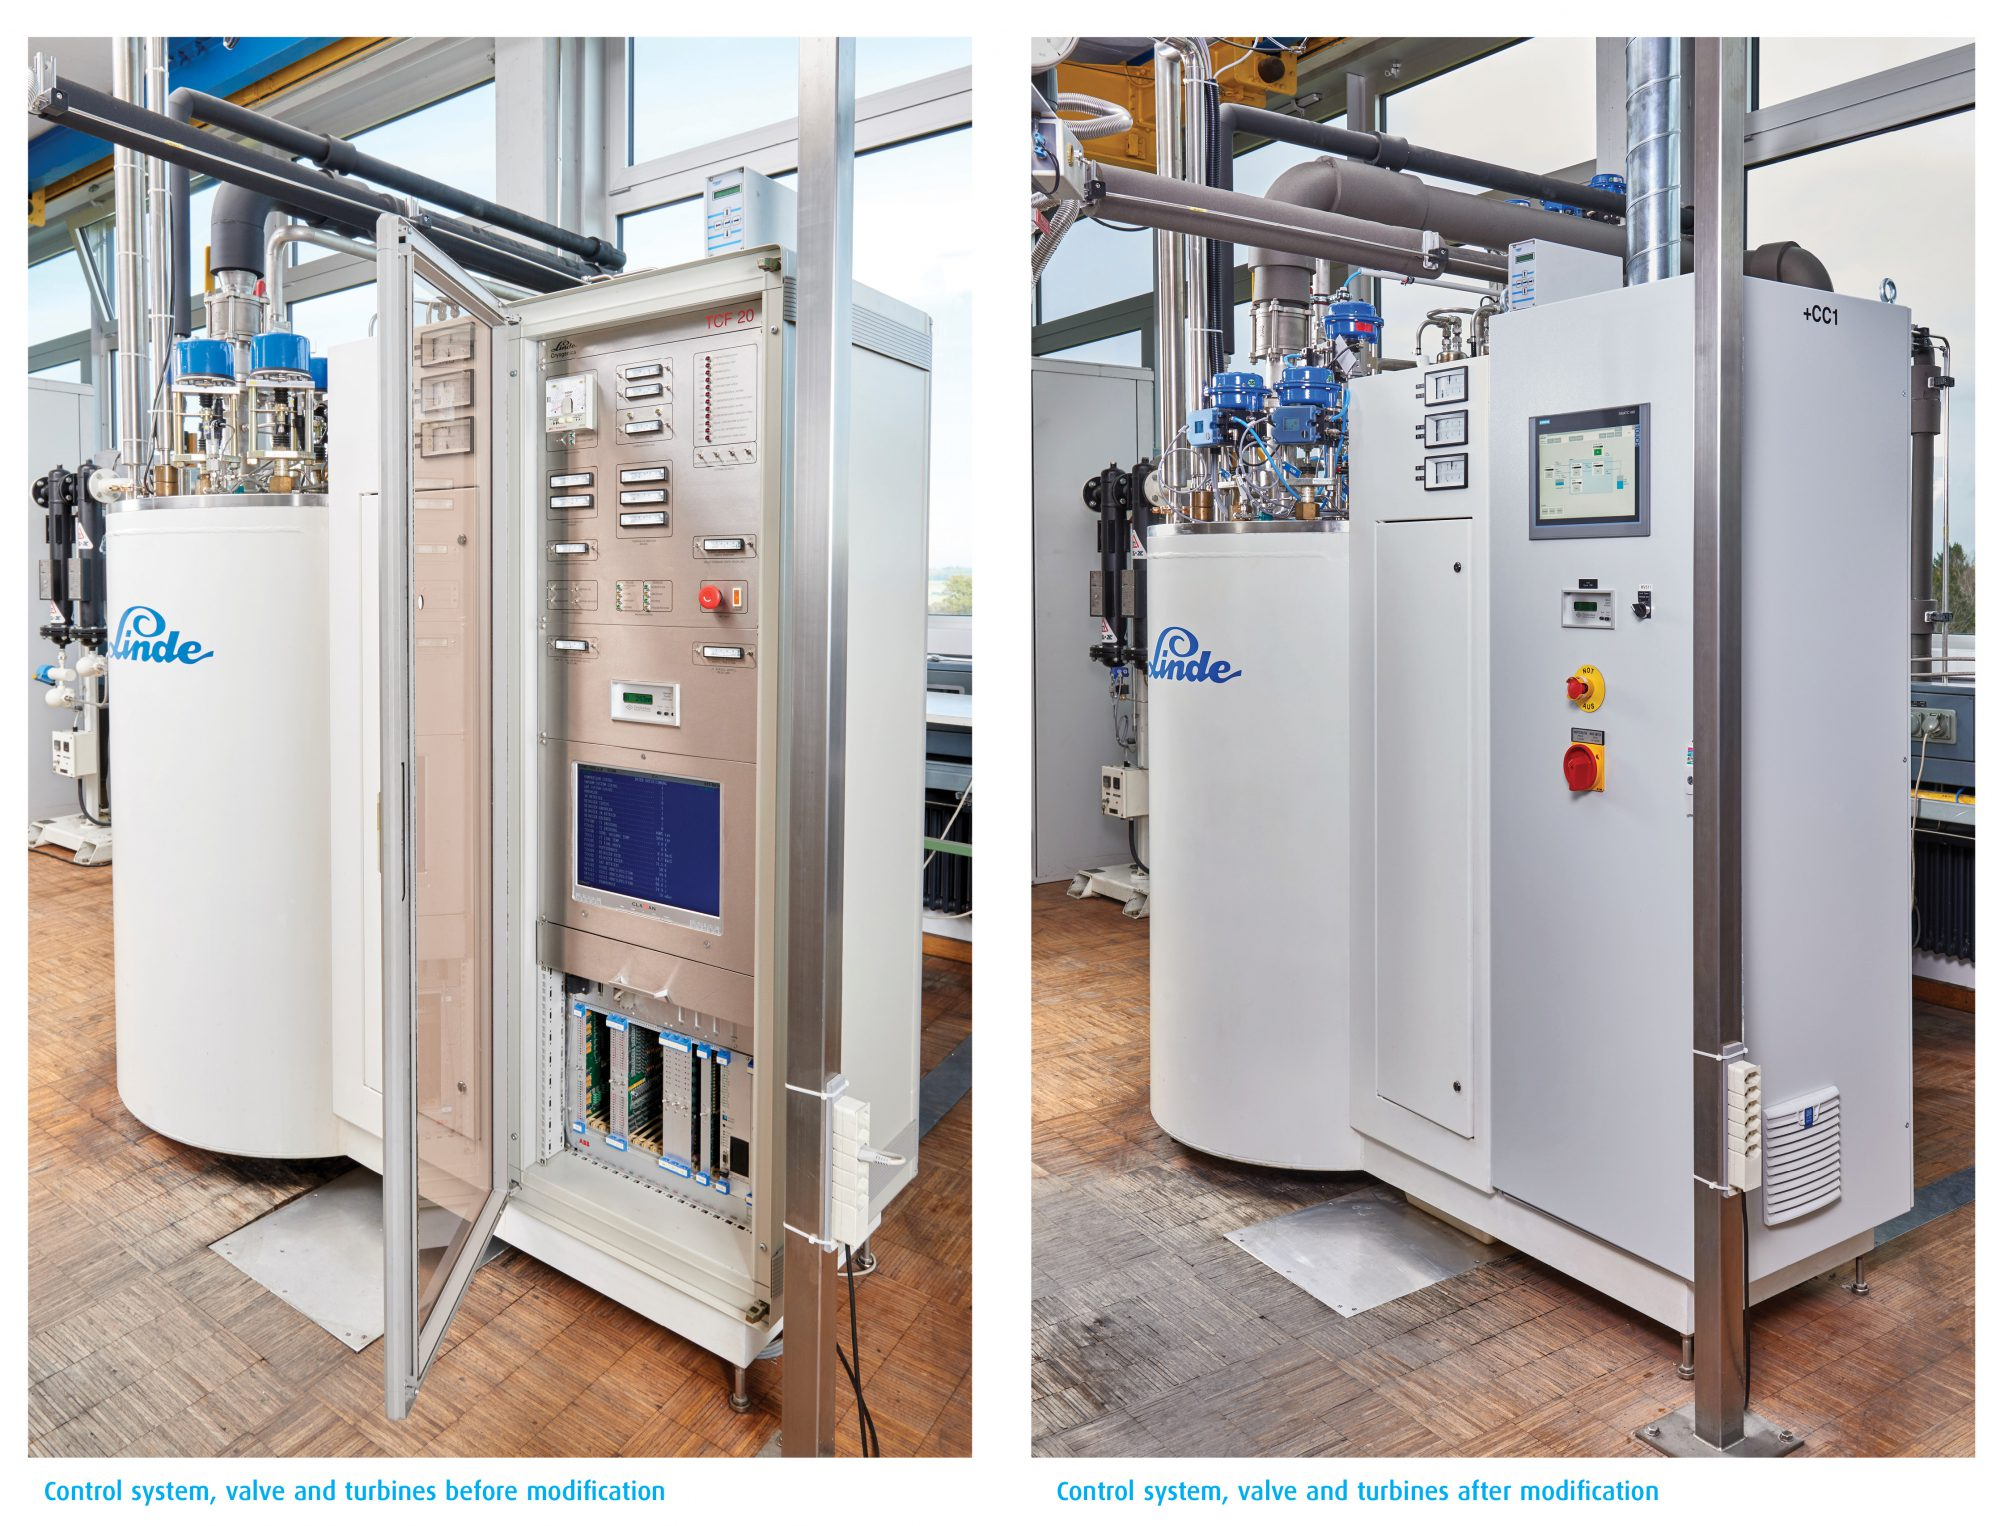 Control system, valves and turbines before and after modernization.